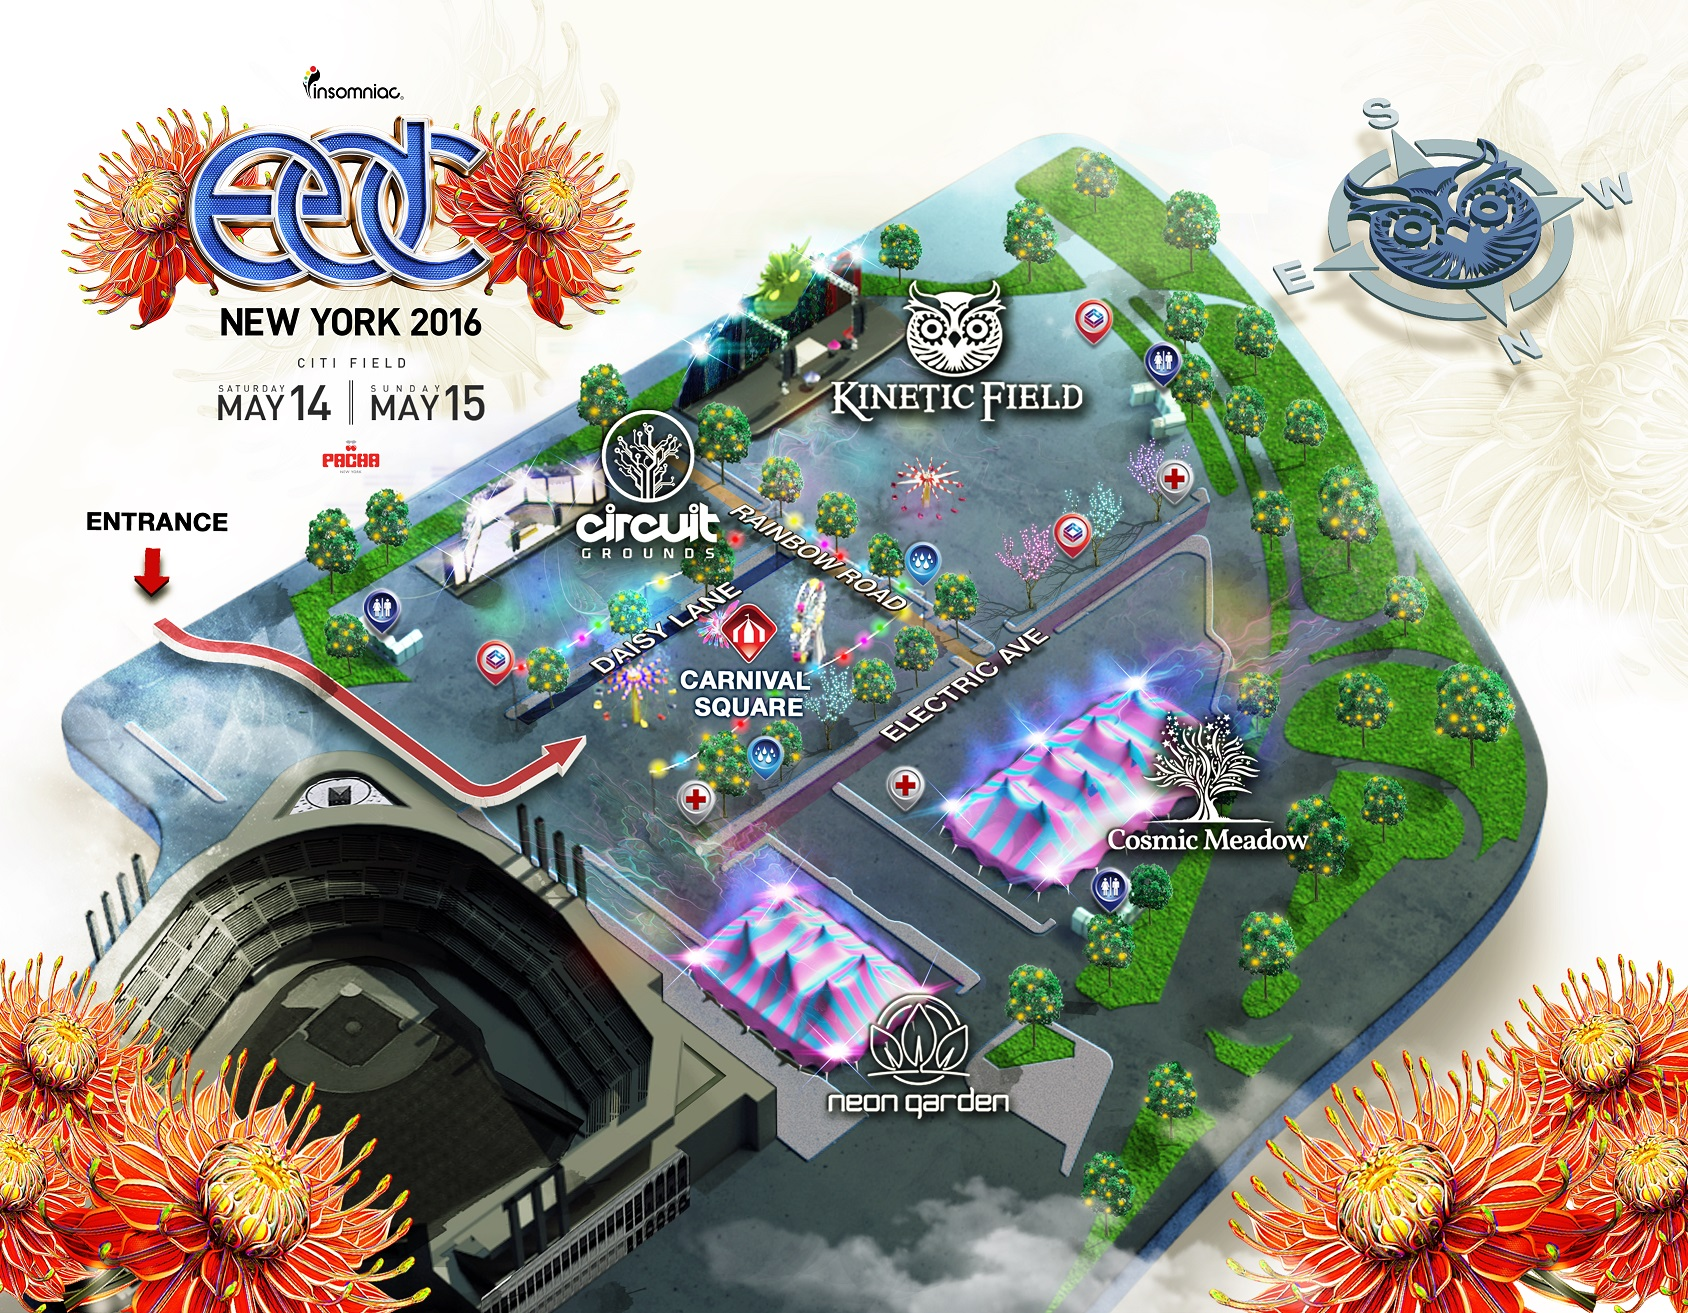 Electric Daisy Carnival New York Heads To New York For - Edc las vegas map 2016